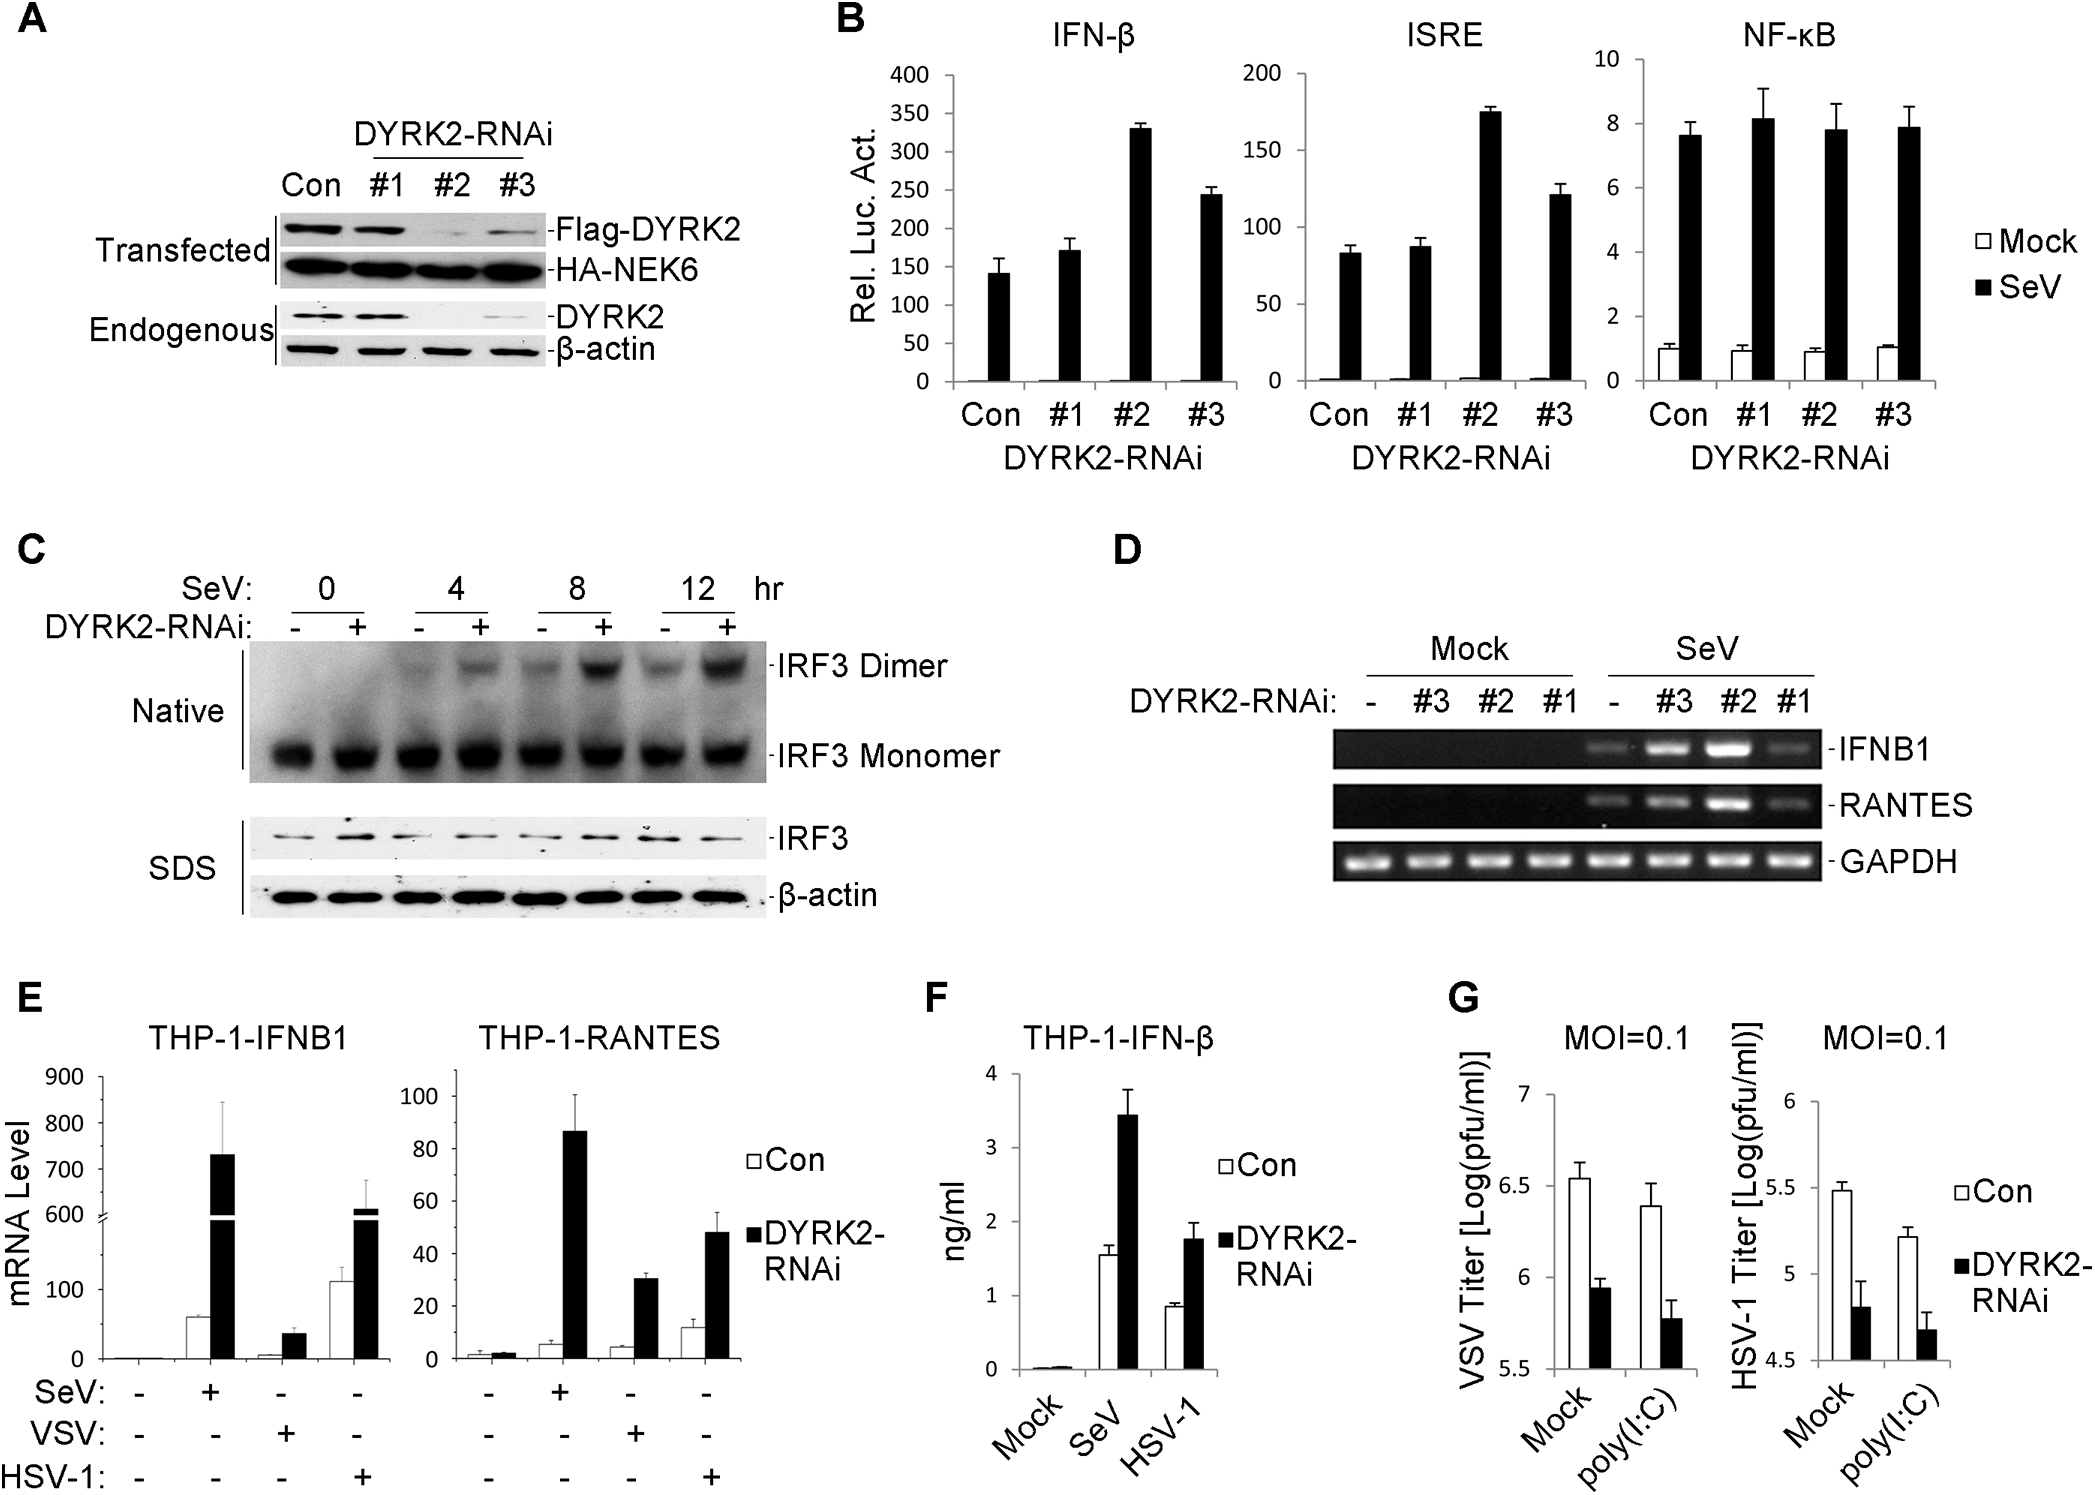 Effects of RNAi-mediated knockdown of DYRK2 on SeV-induced signaling and IRF3 activation.